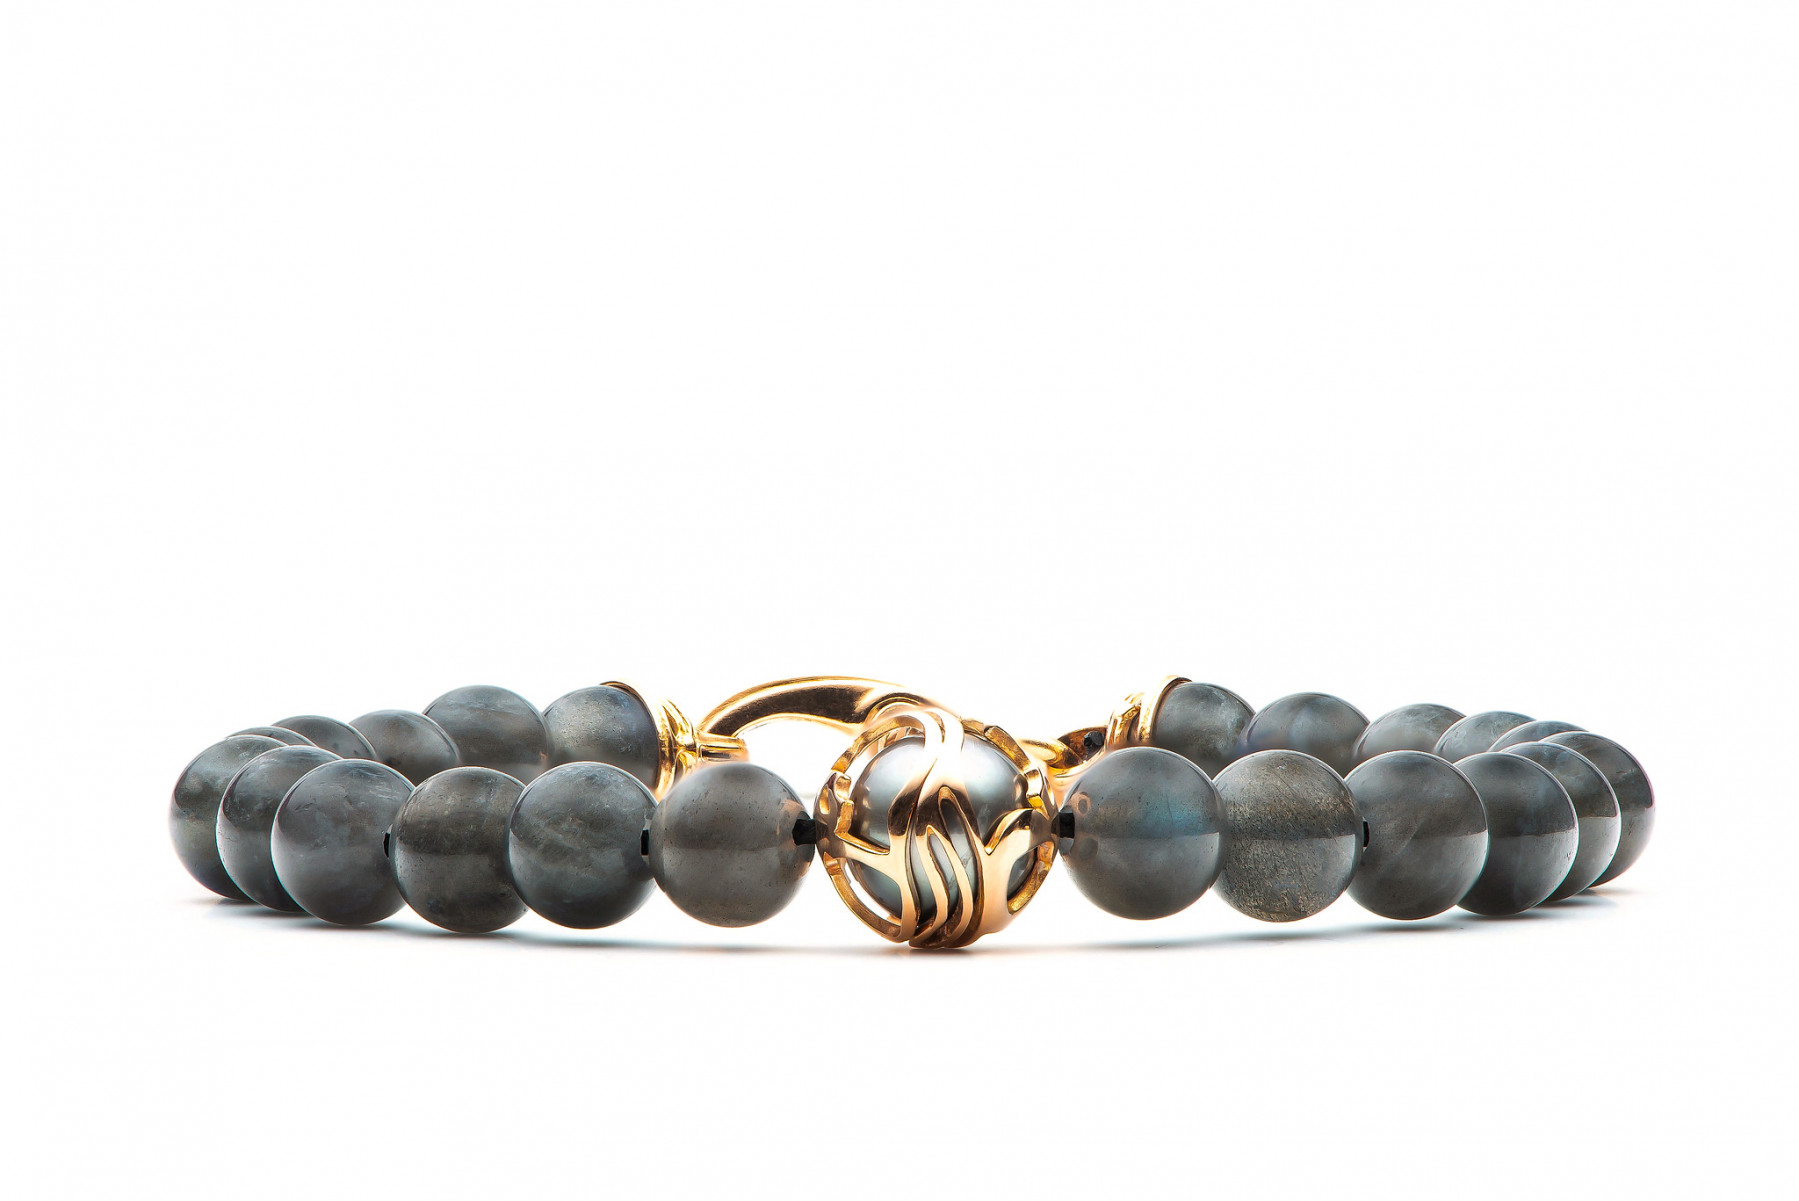 William Henry Moonlight Embrace Rose Gold Labradorite & South Sea Pearl Beaded Bracelet Front View